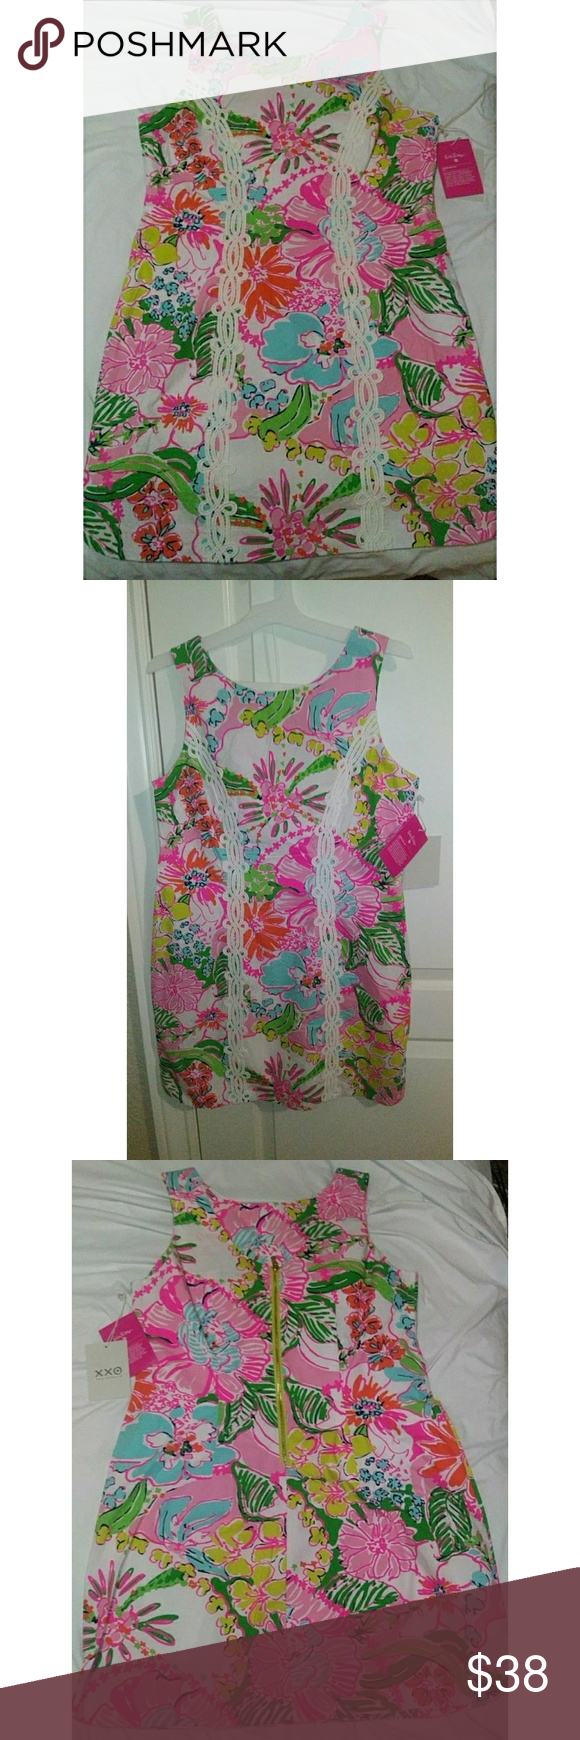 Lily Pulitzer Nosey Posie dress Nosey Posie Mini Shift dress Target Collaboration Year 2015 for 2019. 20 Years of design for All Two decades ago, Target was first to bring great designs to everyone through exclusive partnerships with amazing designers. Now we're celebrating by bringing back 20 of our most-loved moments.  Hand-painted prints define the iconic Lily Pulitzer look, in clothing designed for a vacation state of mind. Our 2015 Lily Pulitzer for Target collection celebrated Lily's Palm  #minimomentcelebrations